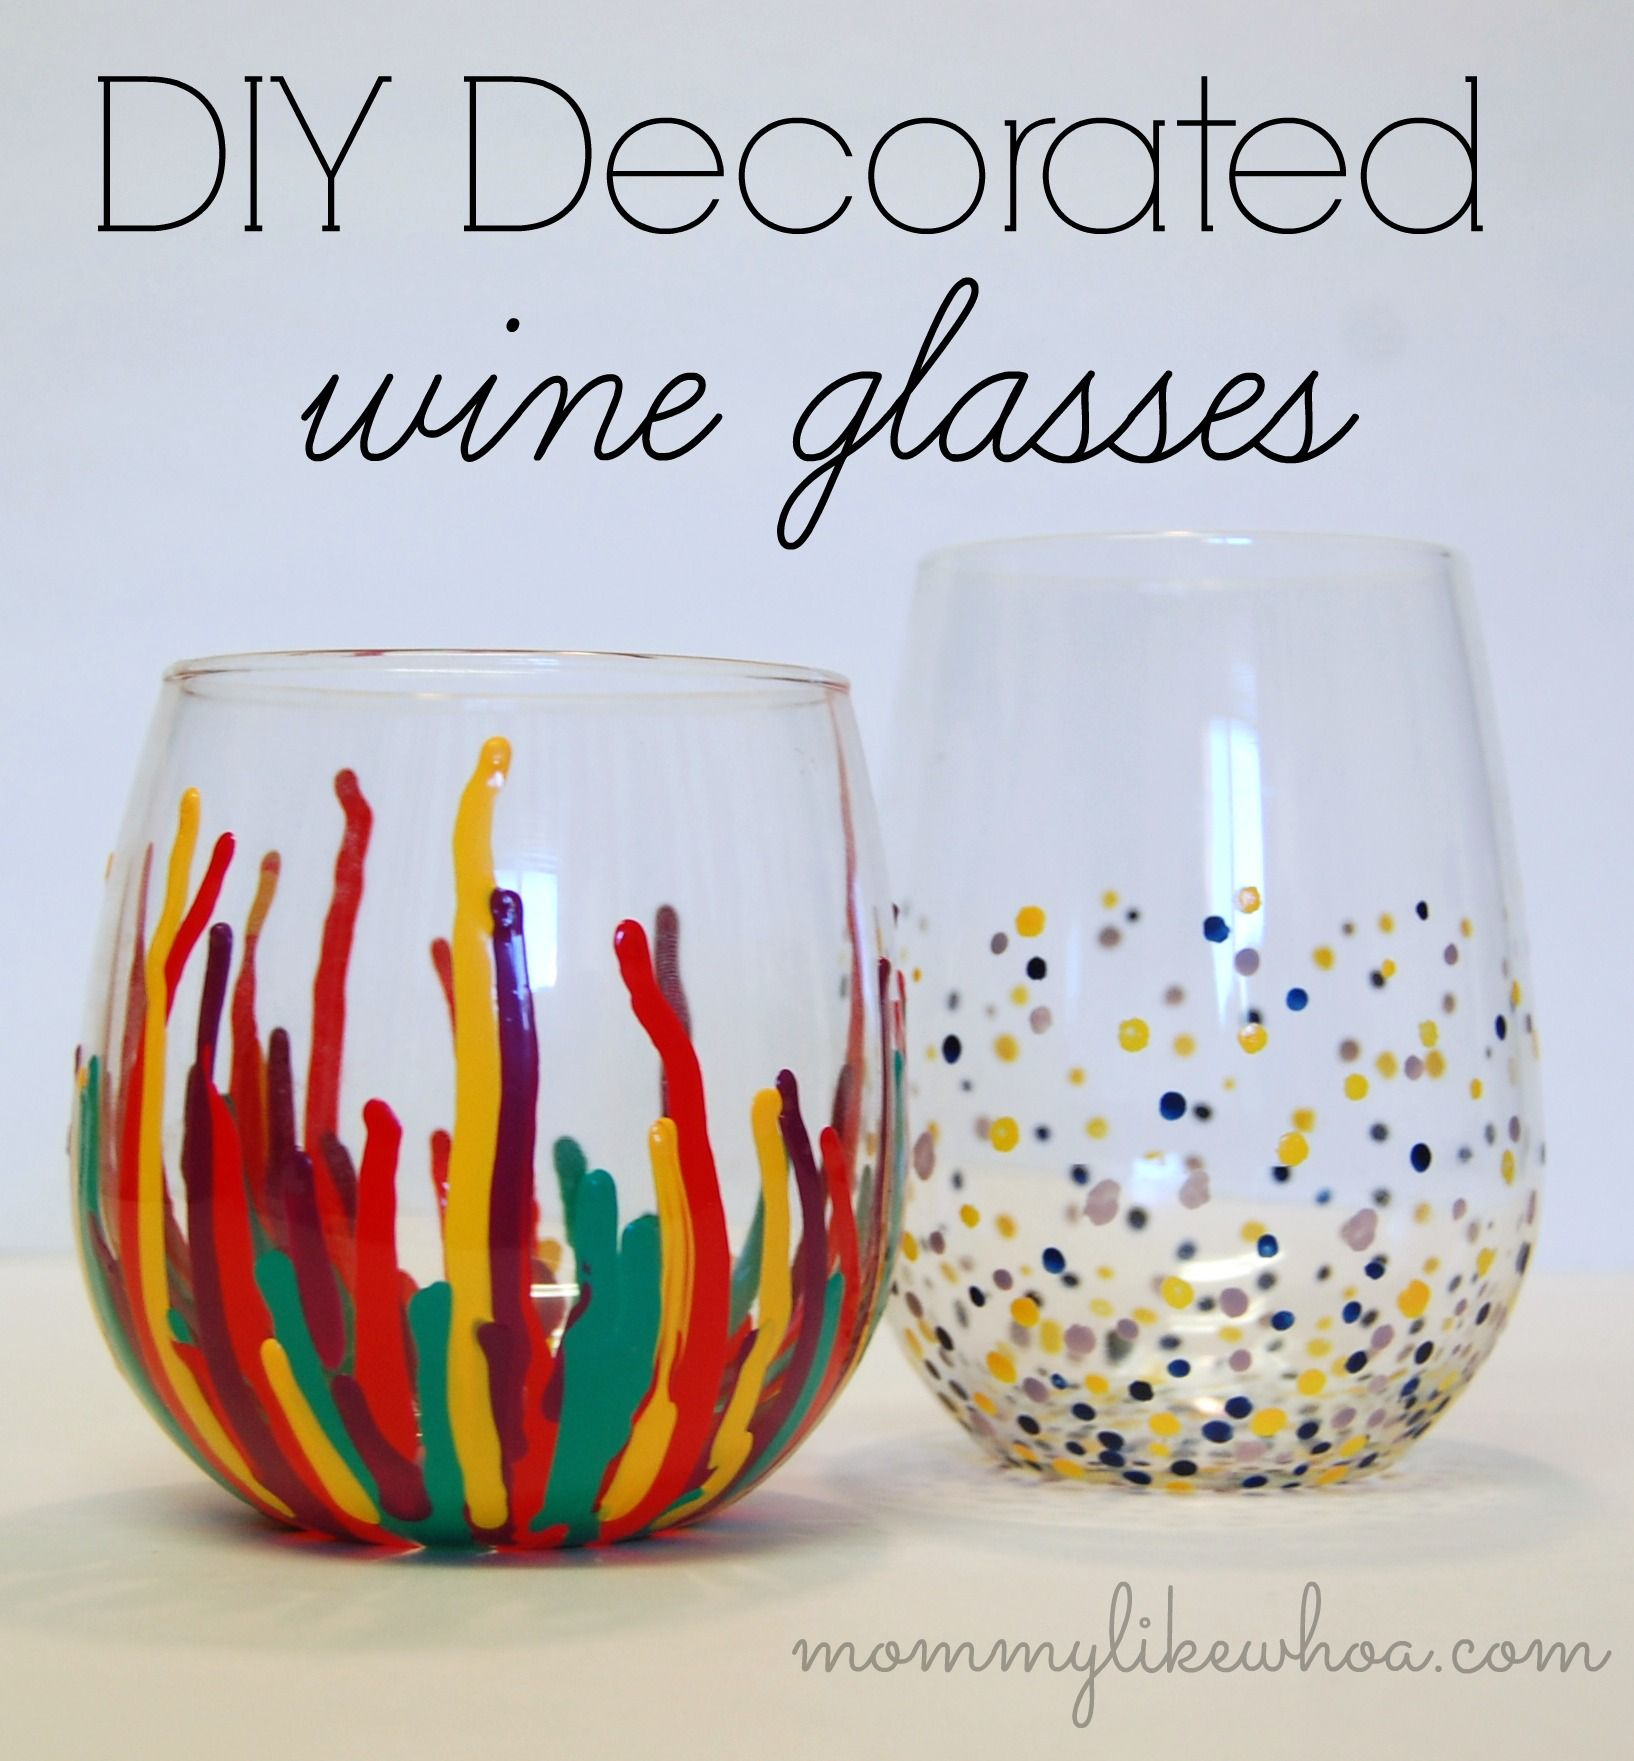 Diy decorated wine glasses wine decorating and flowers for Diy painted wine glasses